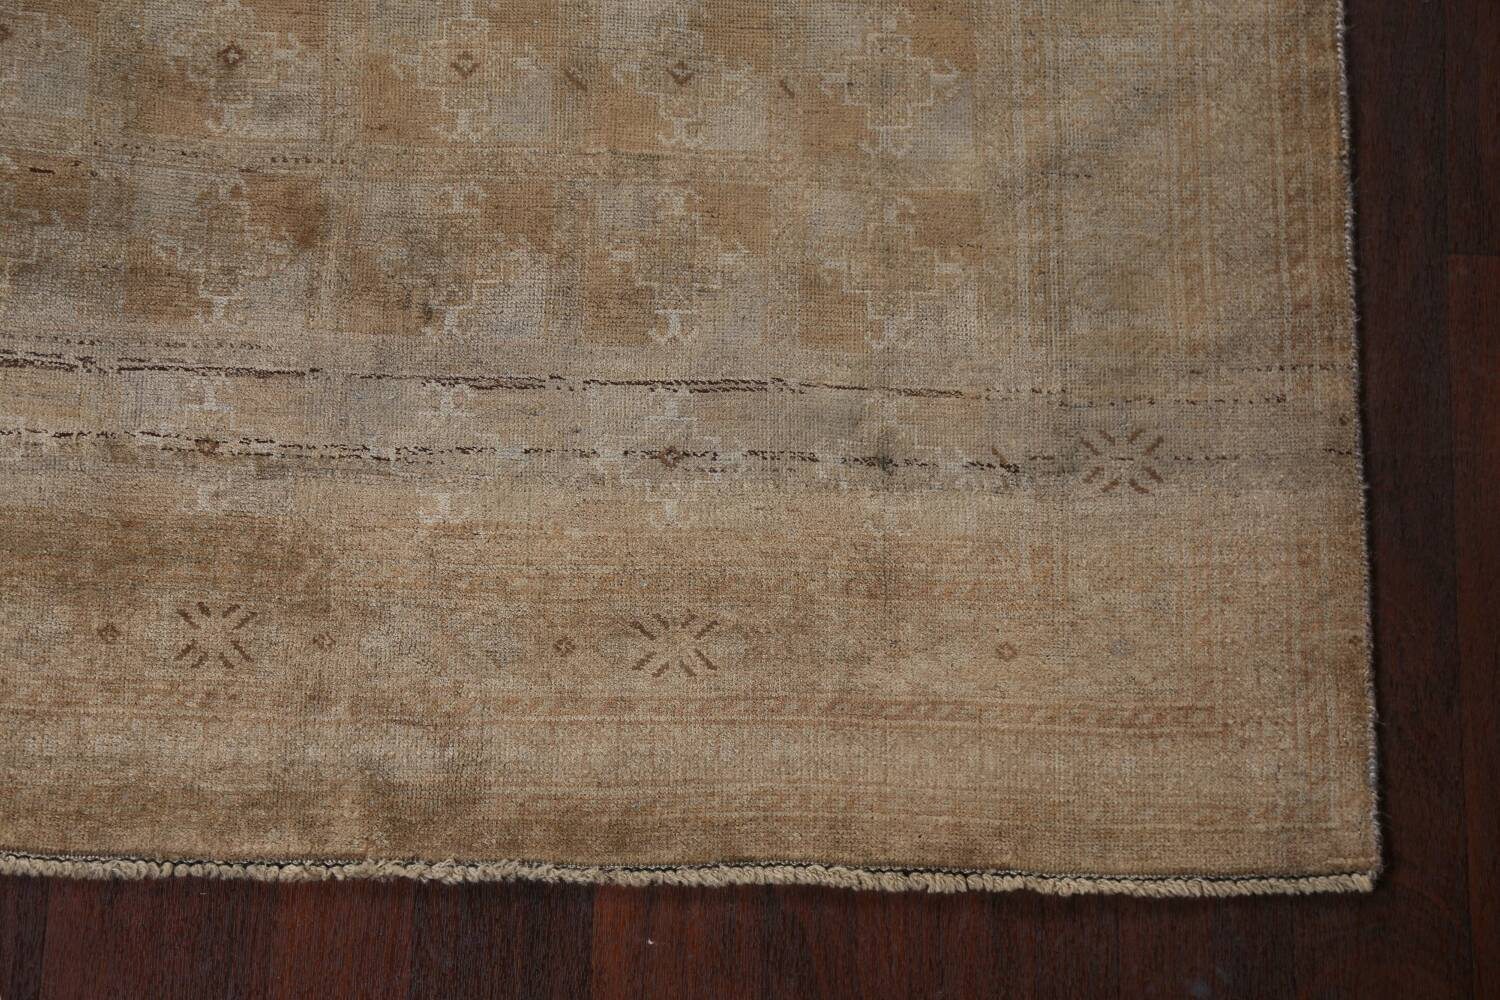 Antique Distressed Balouch Persian Wool Rug 4x8 image 6